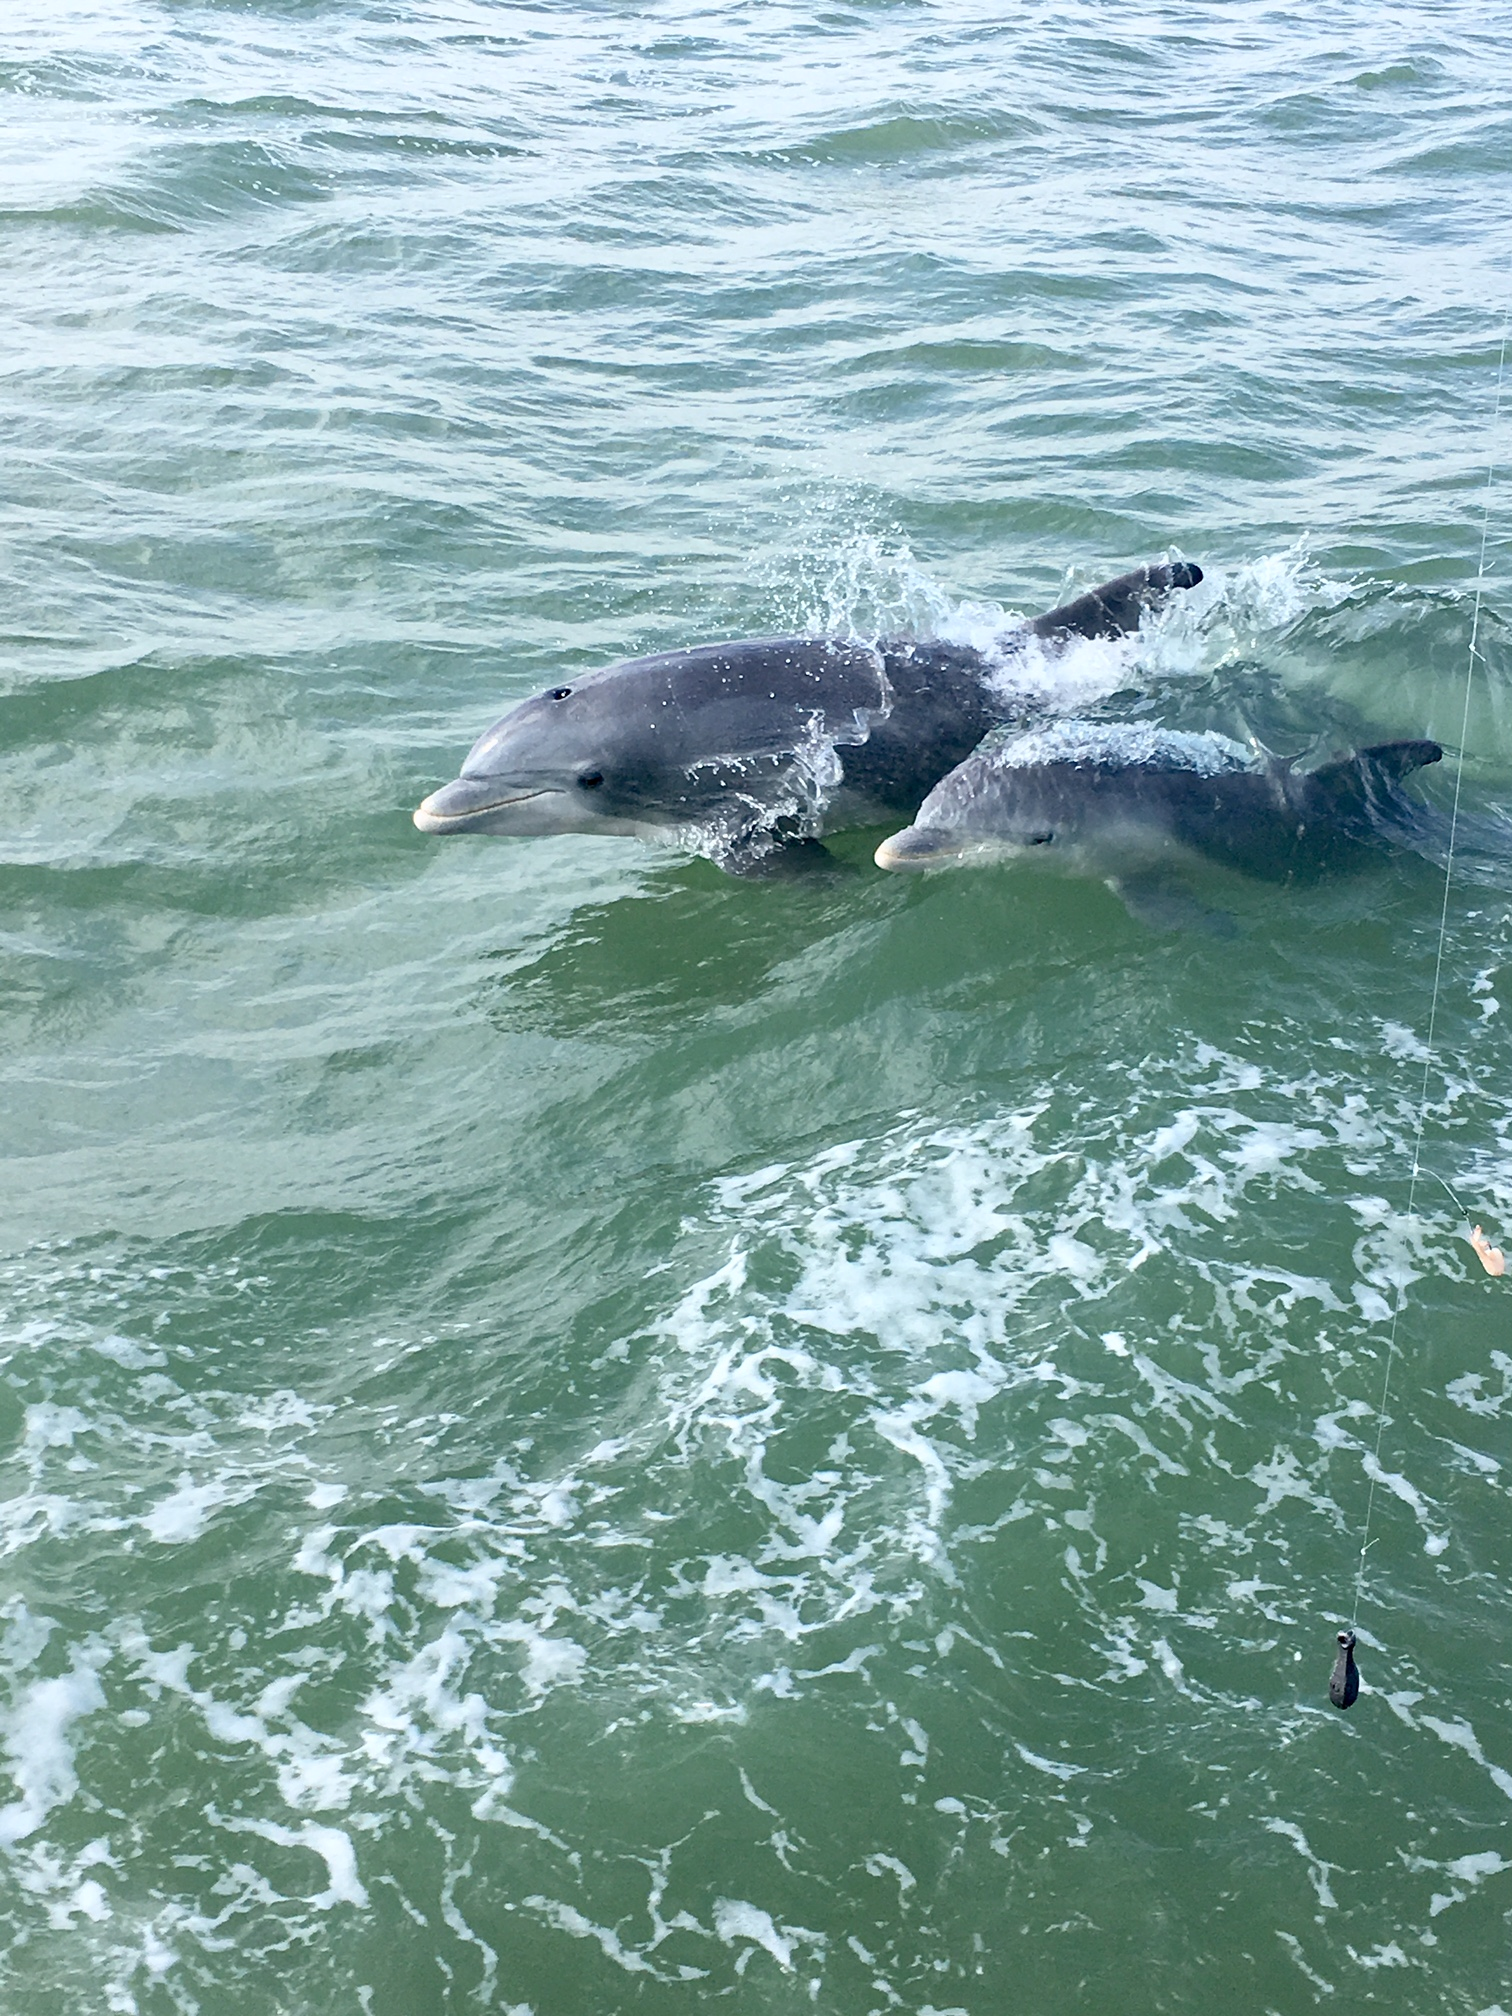 Watching the dolphins from a boat in